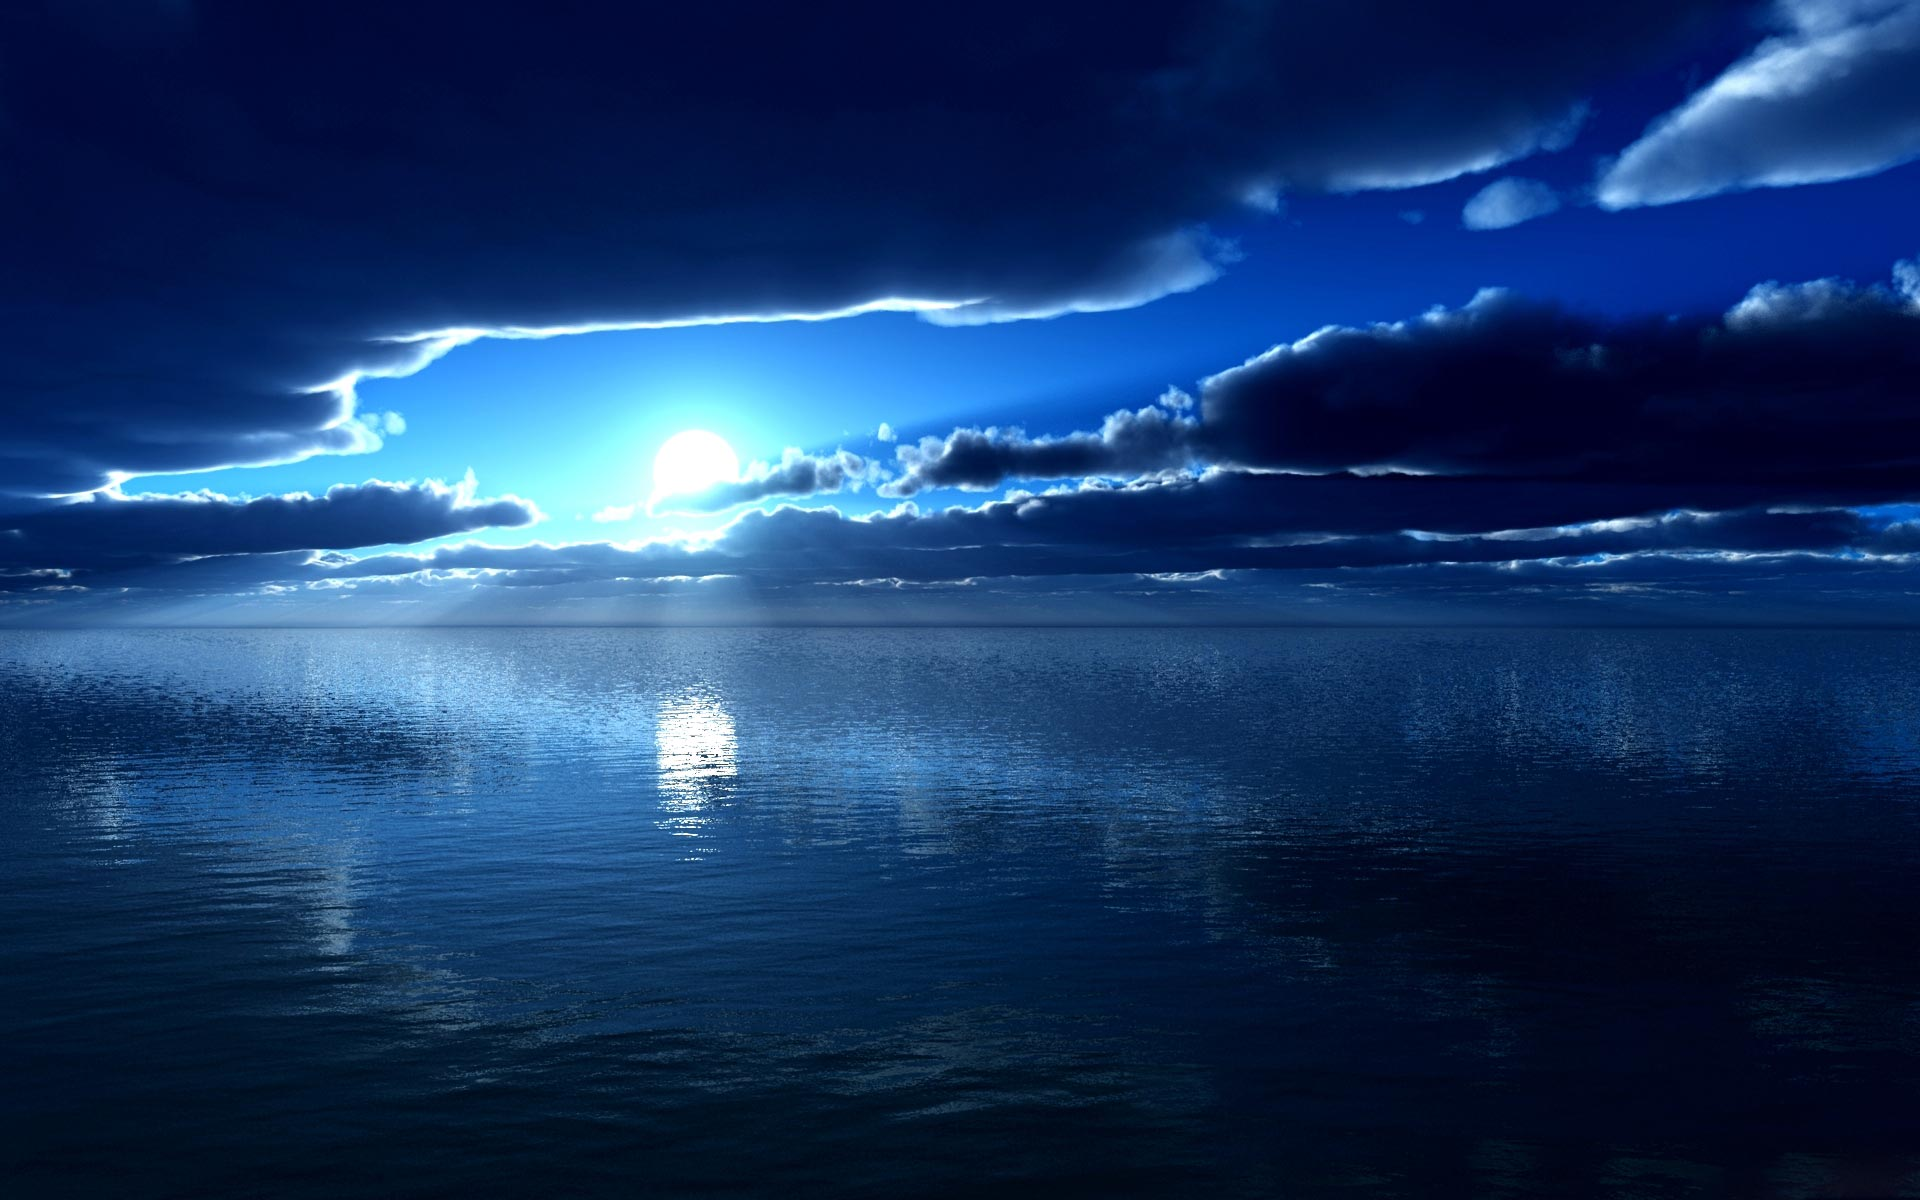 Download Sky and River relax desktop backgrounds hd Wallpaper in high 1920x1200